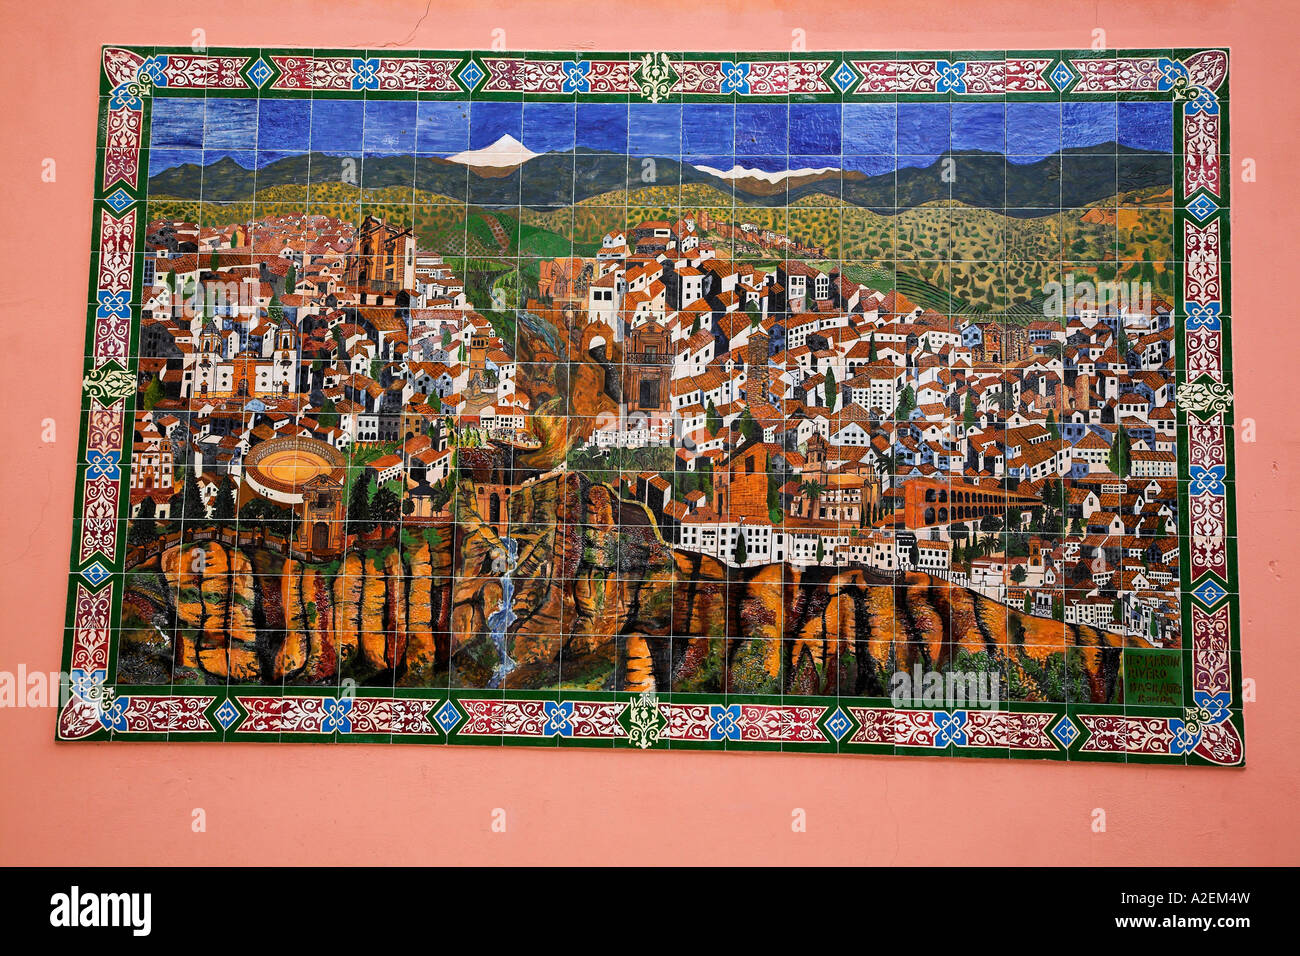 A ceramic tile mural of ronda located on a wall in the old town a ceramic tile mural of ronda located on a wall in the old town andalucia spain 2006 doublecrazyfo Images